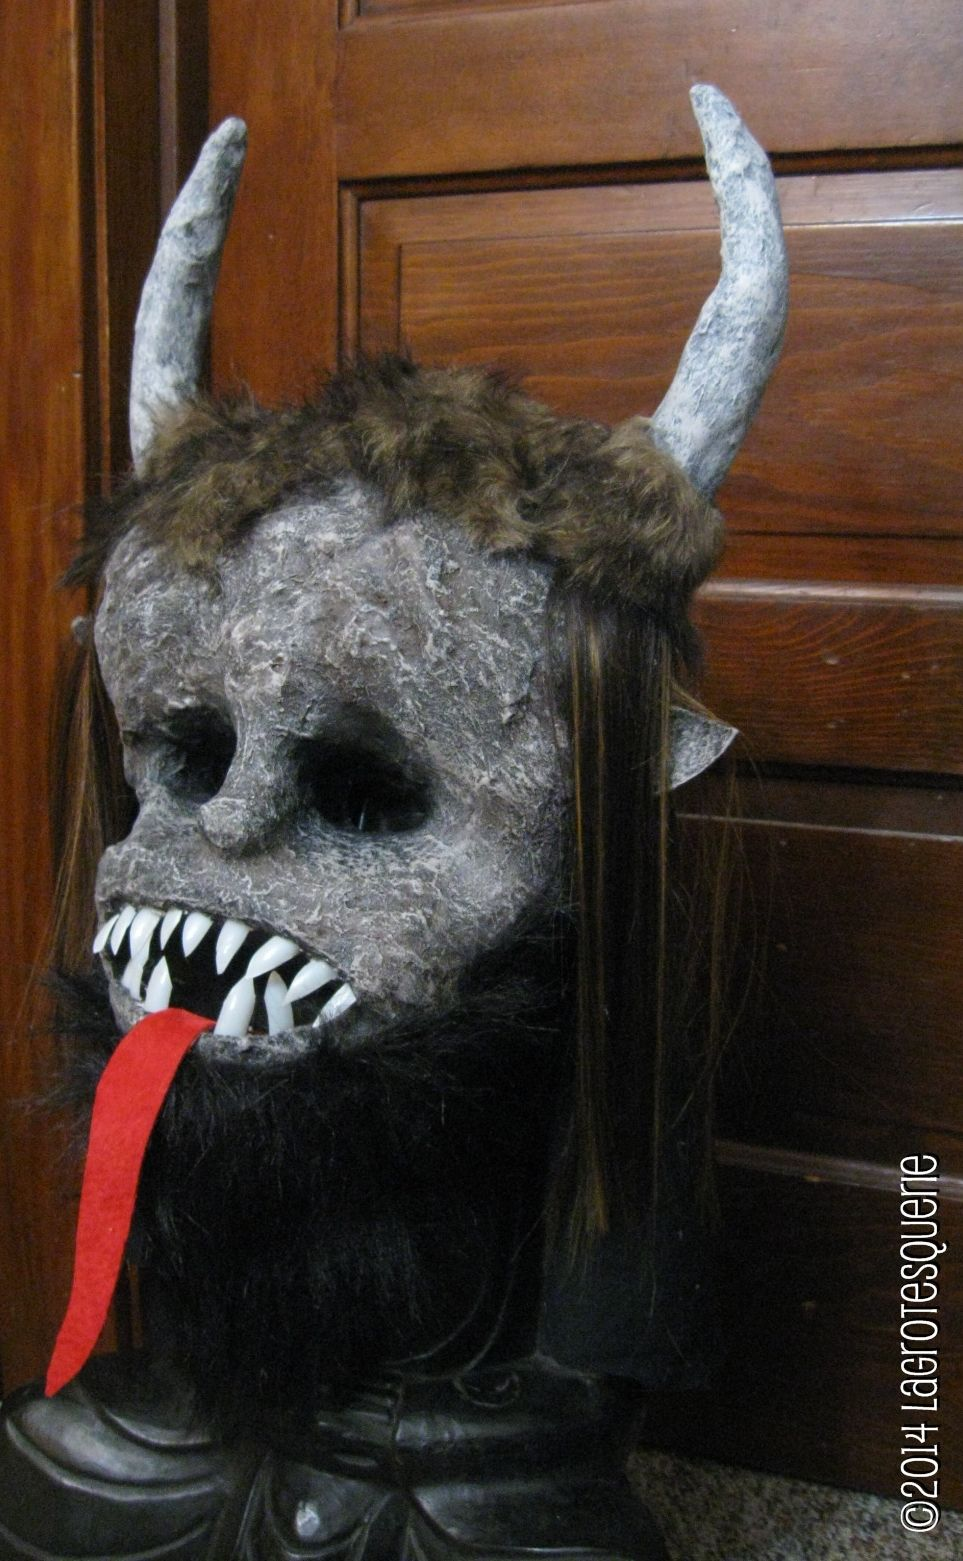 The kompleted Krampus mask.